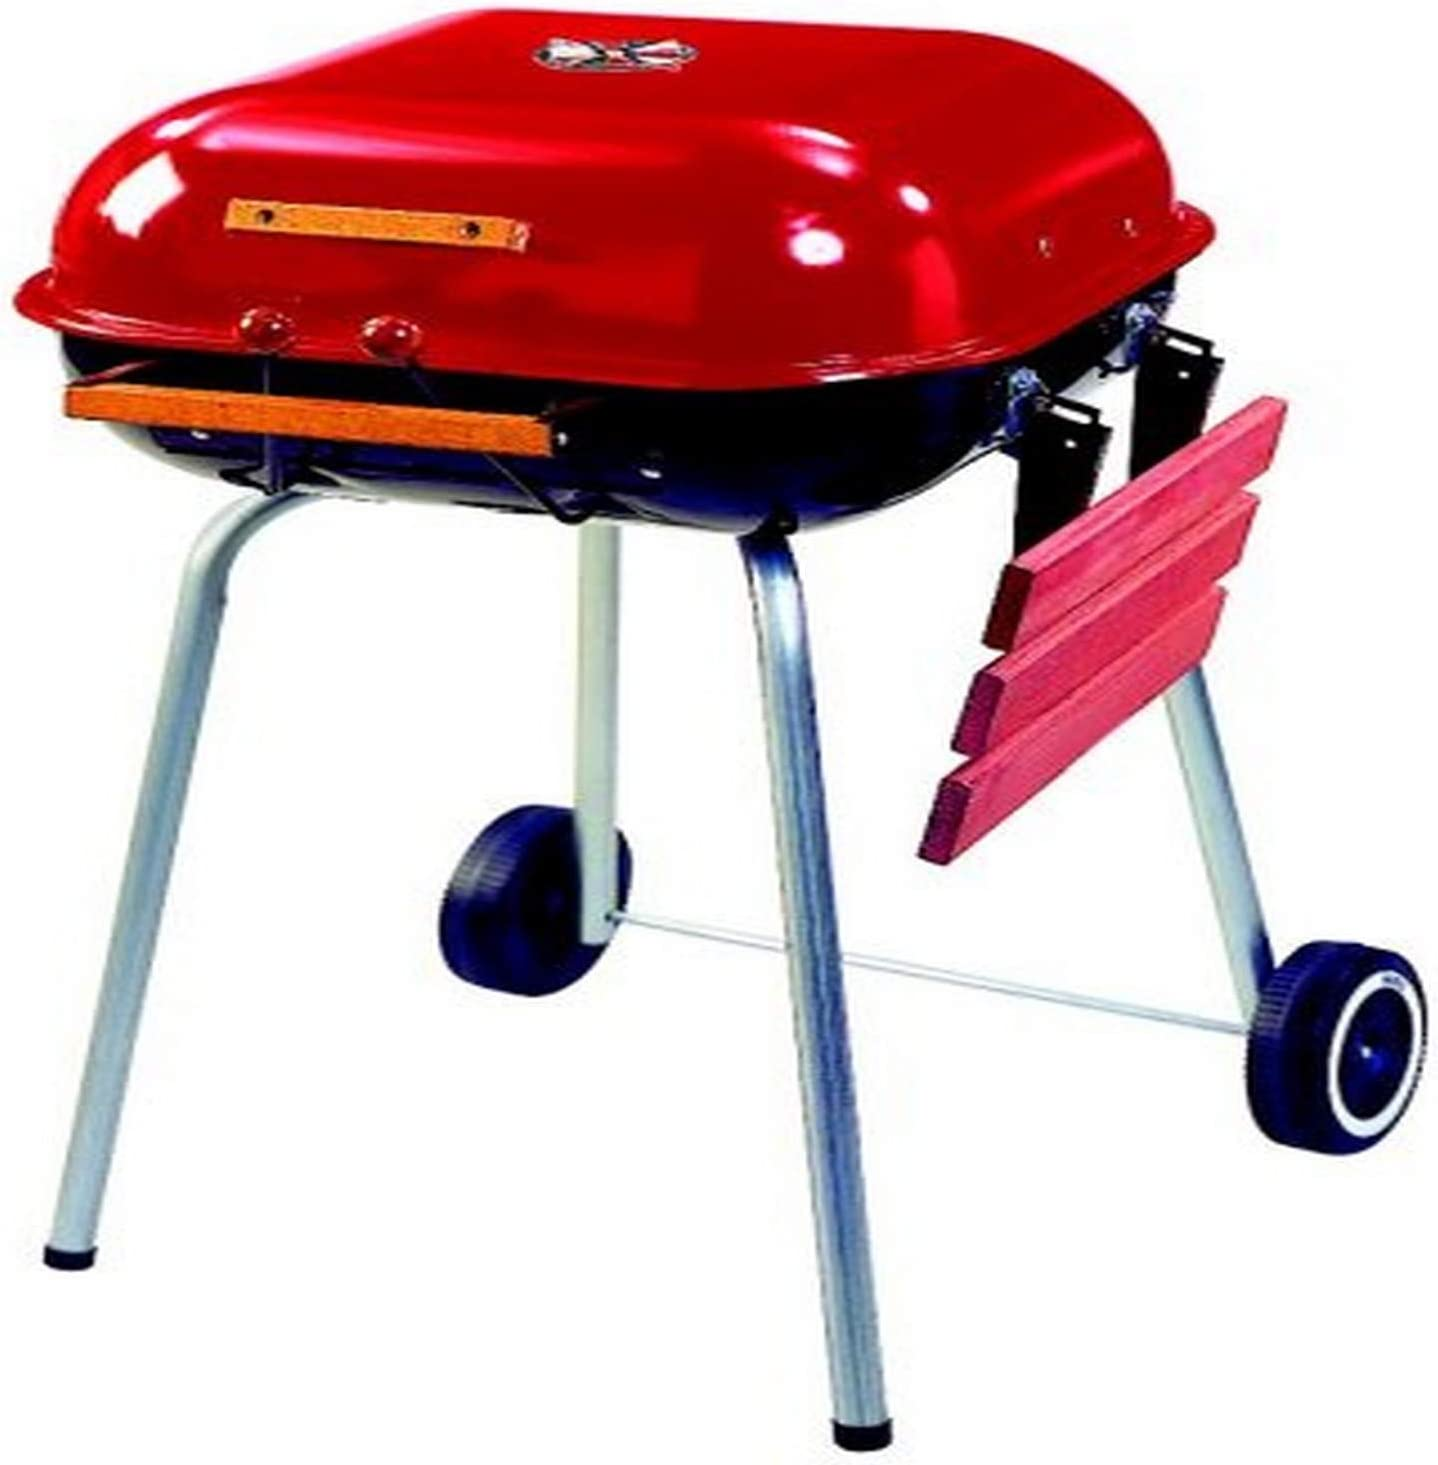 Americana Swinger Charcoal Grill with Side Table Red One 当店限定販売 信託